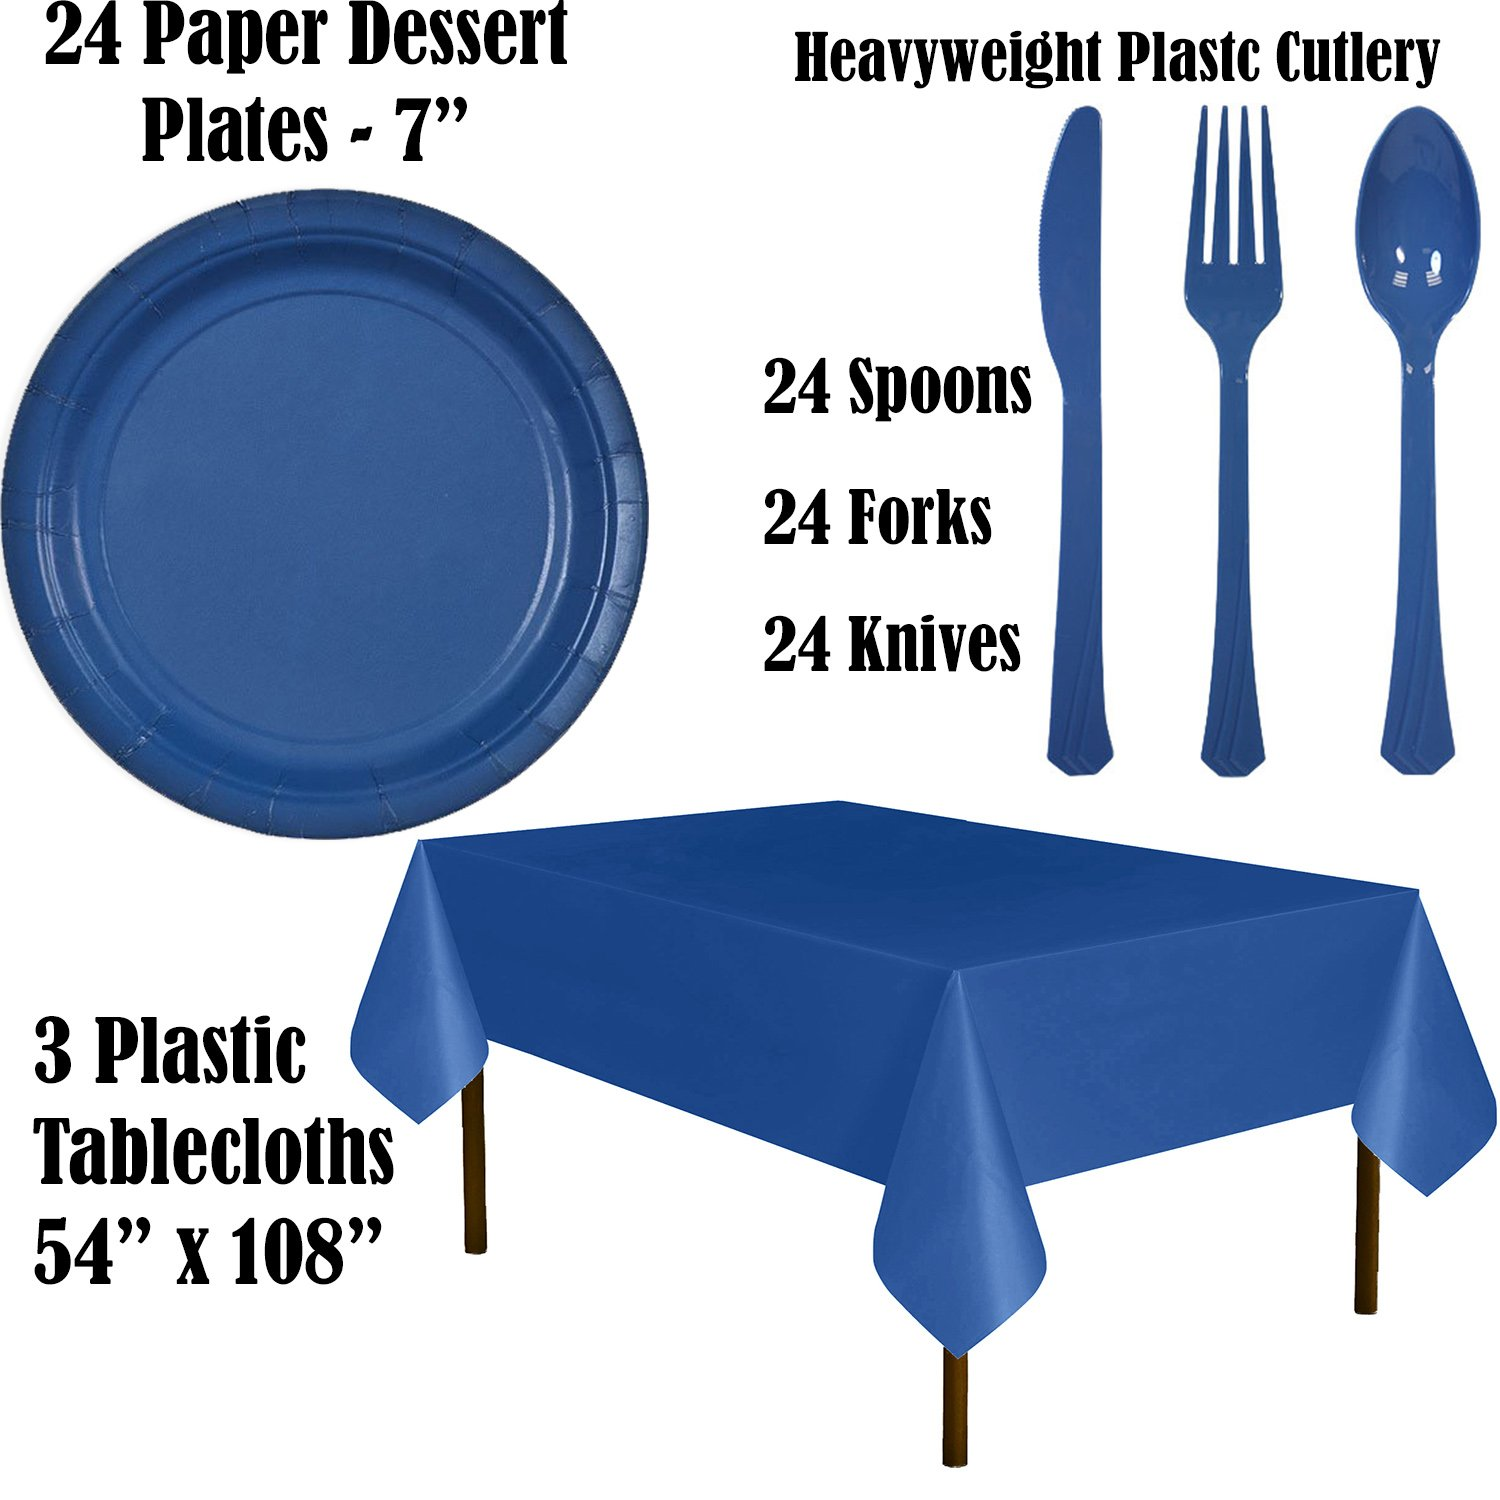 Paper Tableware Set for 24 - Light Blue & Blue - Dinner and Dessert Plates, Cups, Napkins, Cutlery (Spoons, Forks, Knives), and Tablecloths - Full Two-Tone Party Supplies Pack by HeroFiber (Image #3)